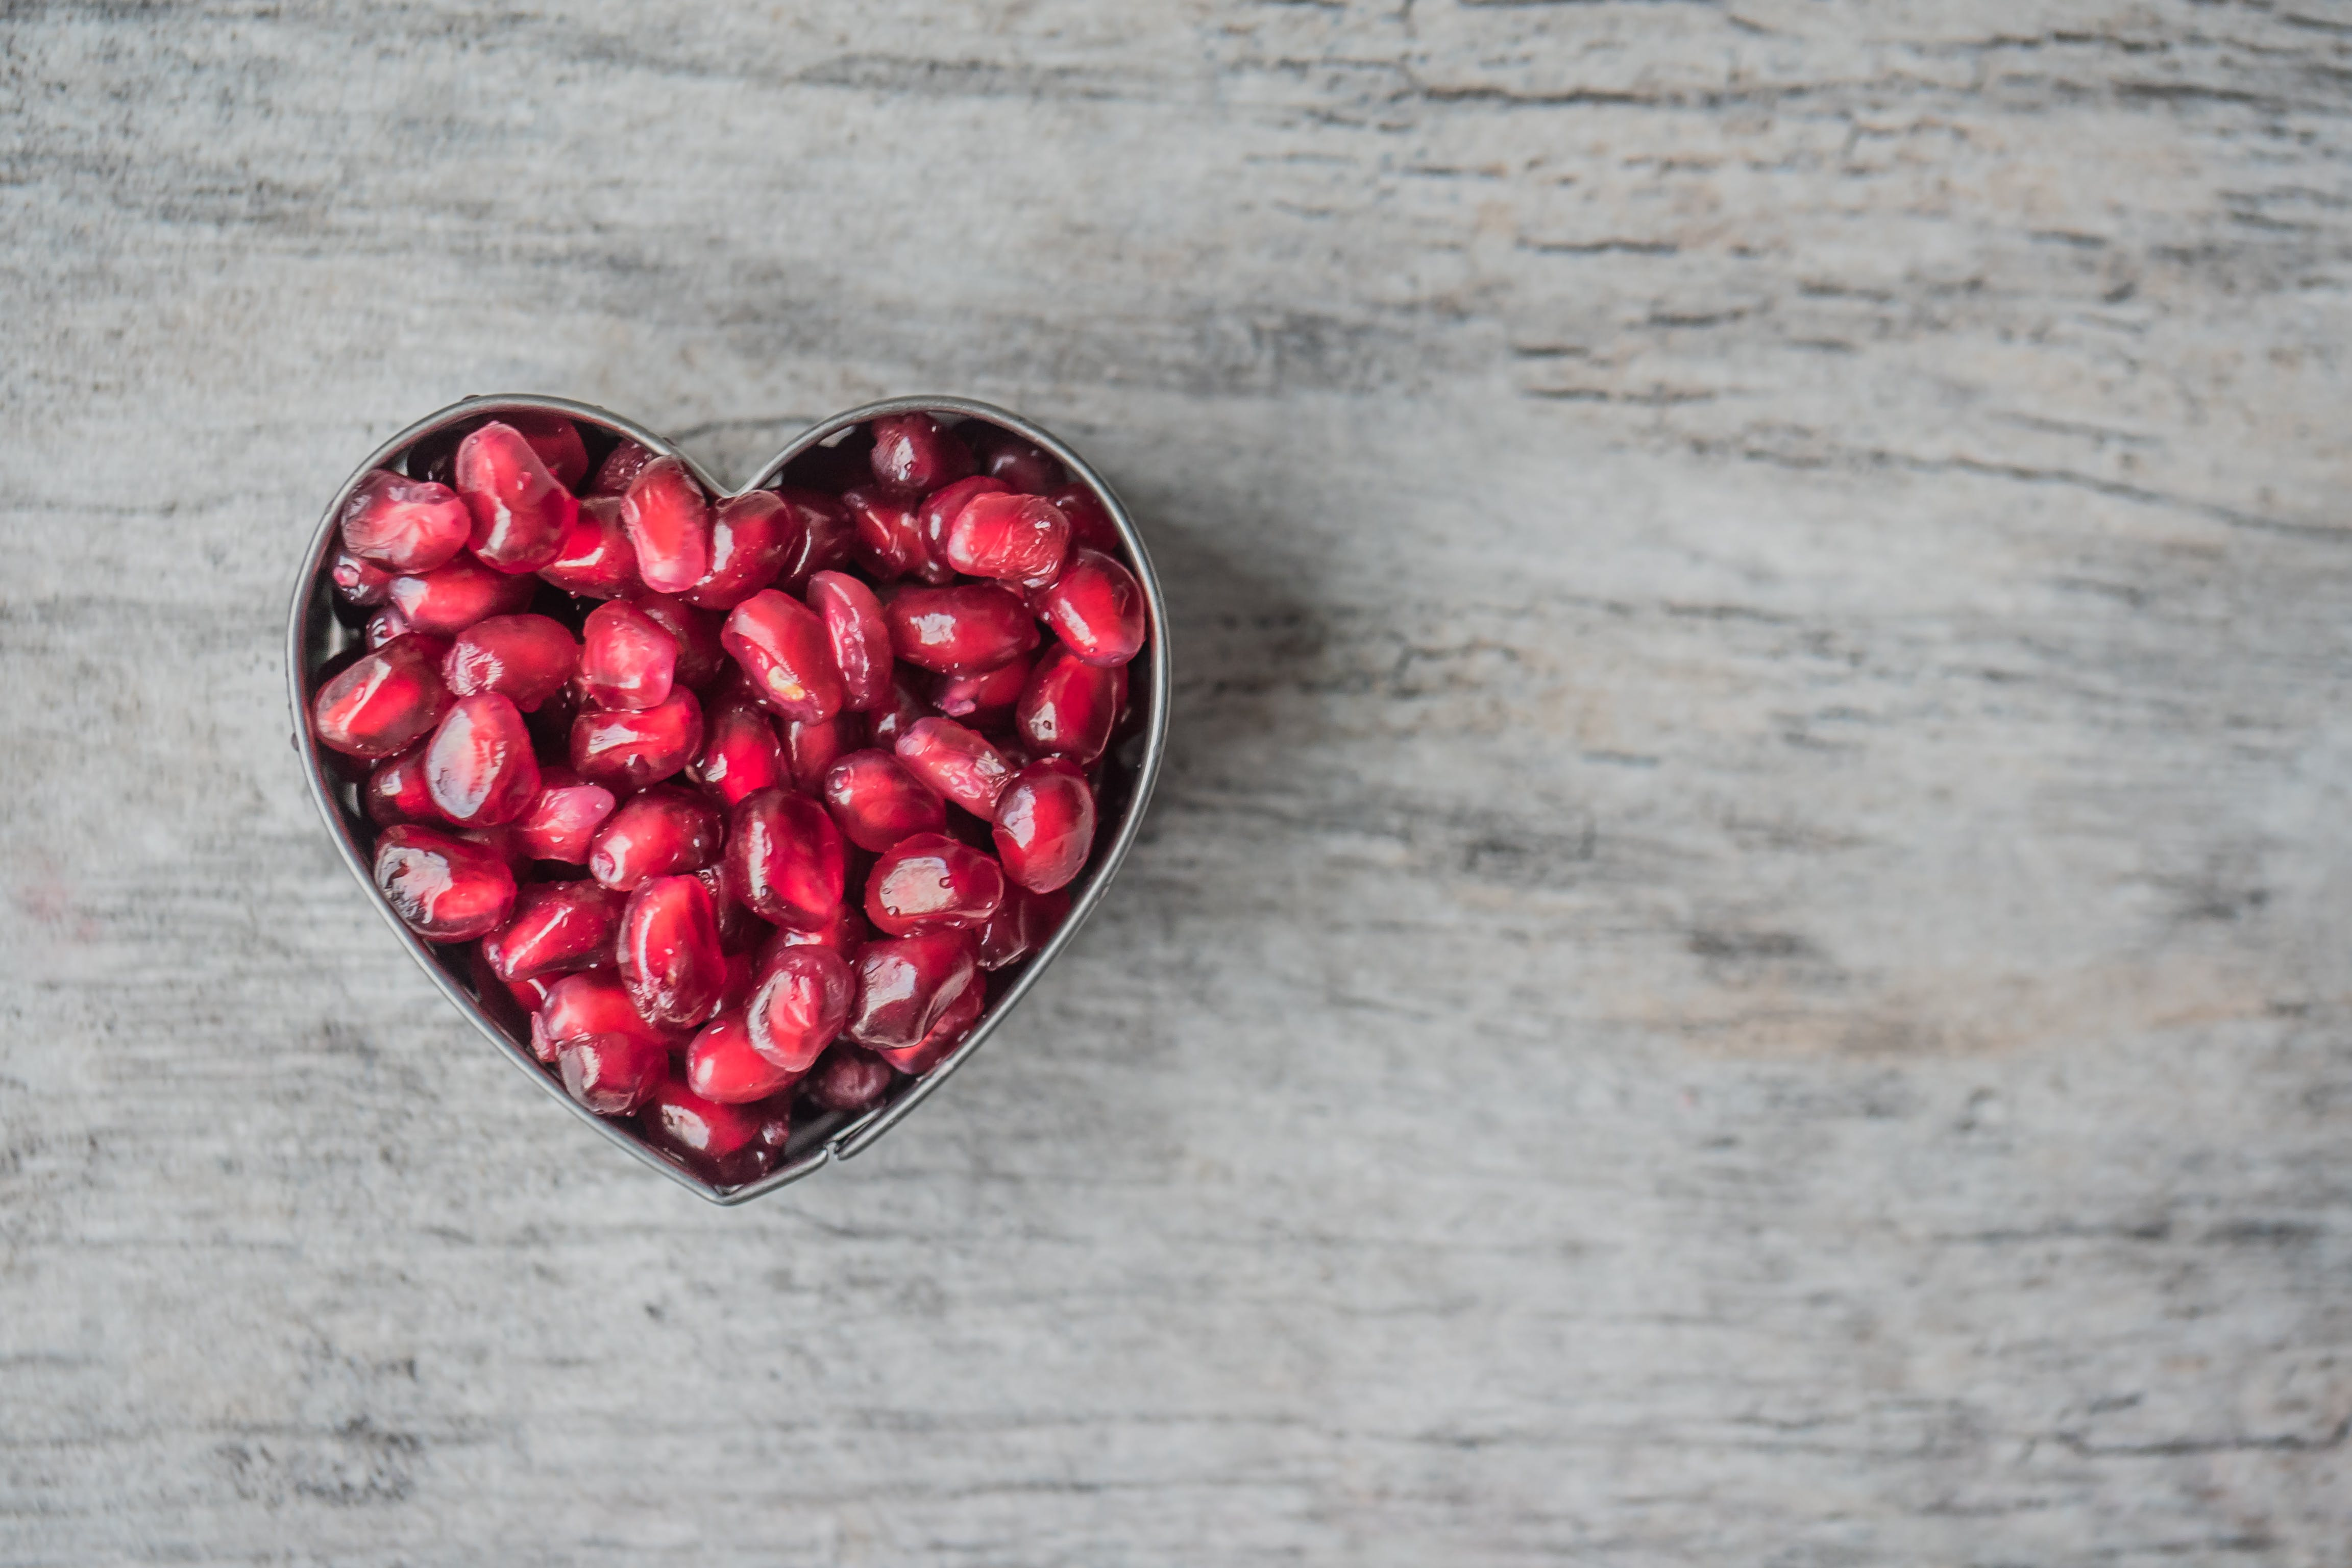 Silver Heart Bowl Filled of Red Pomegranate Seeds